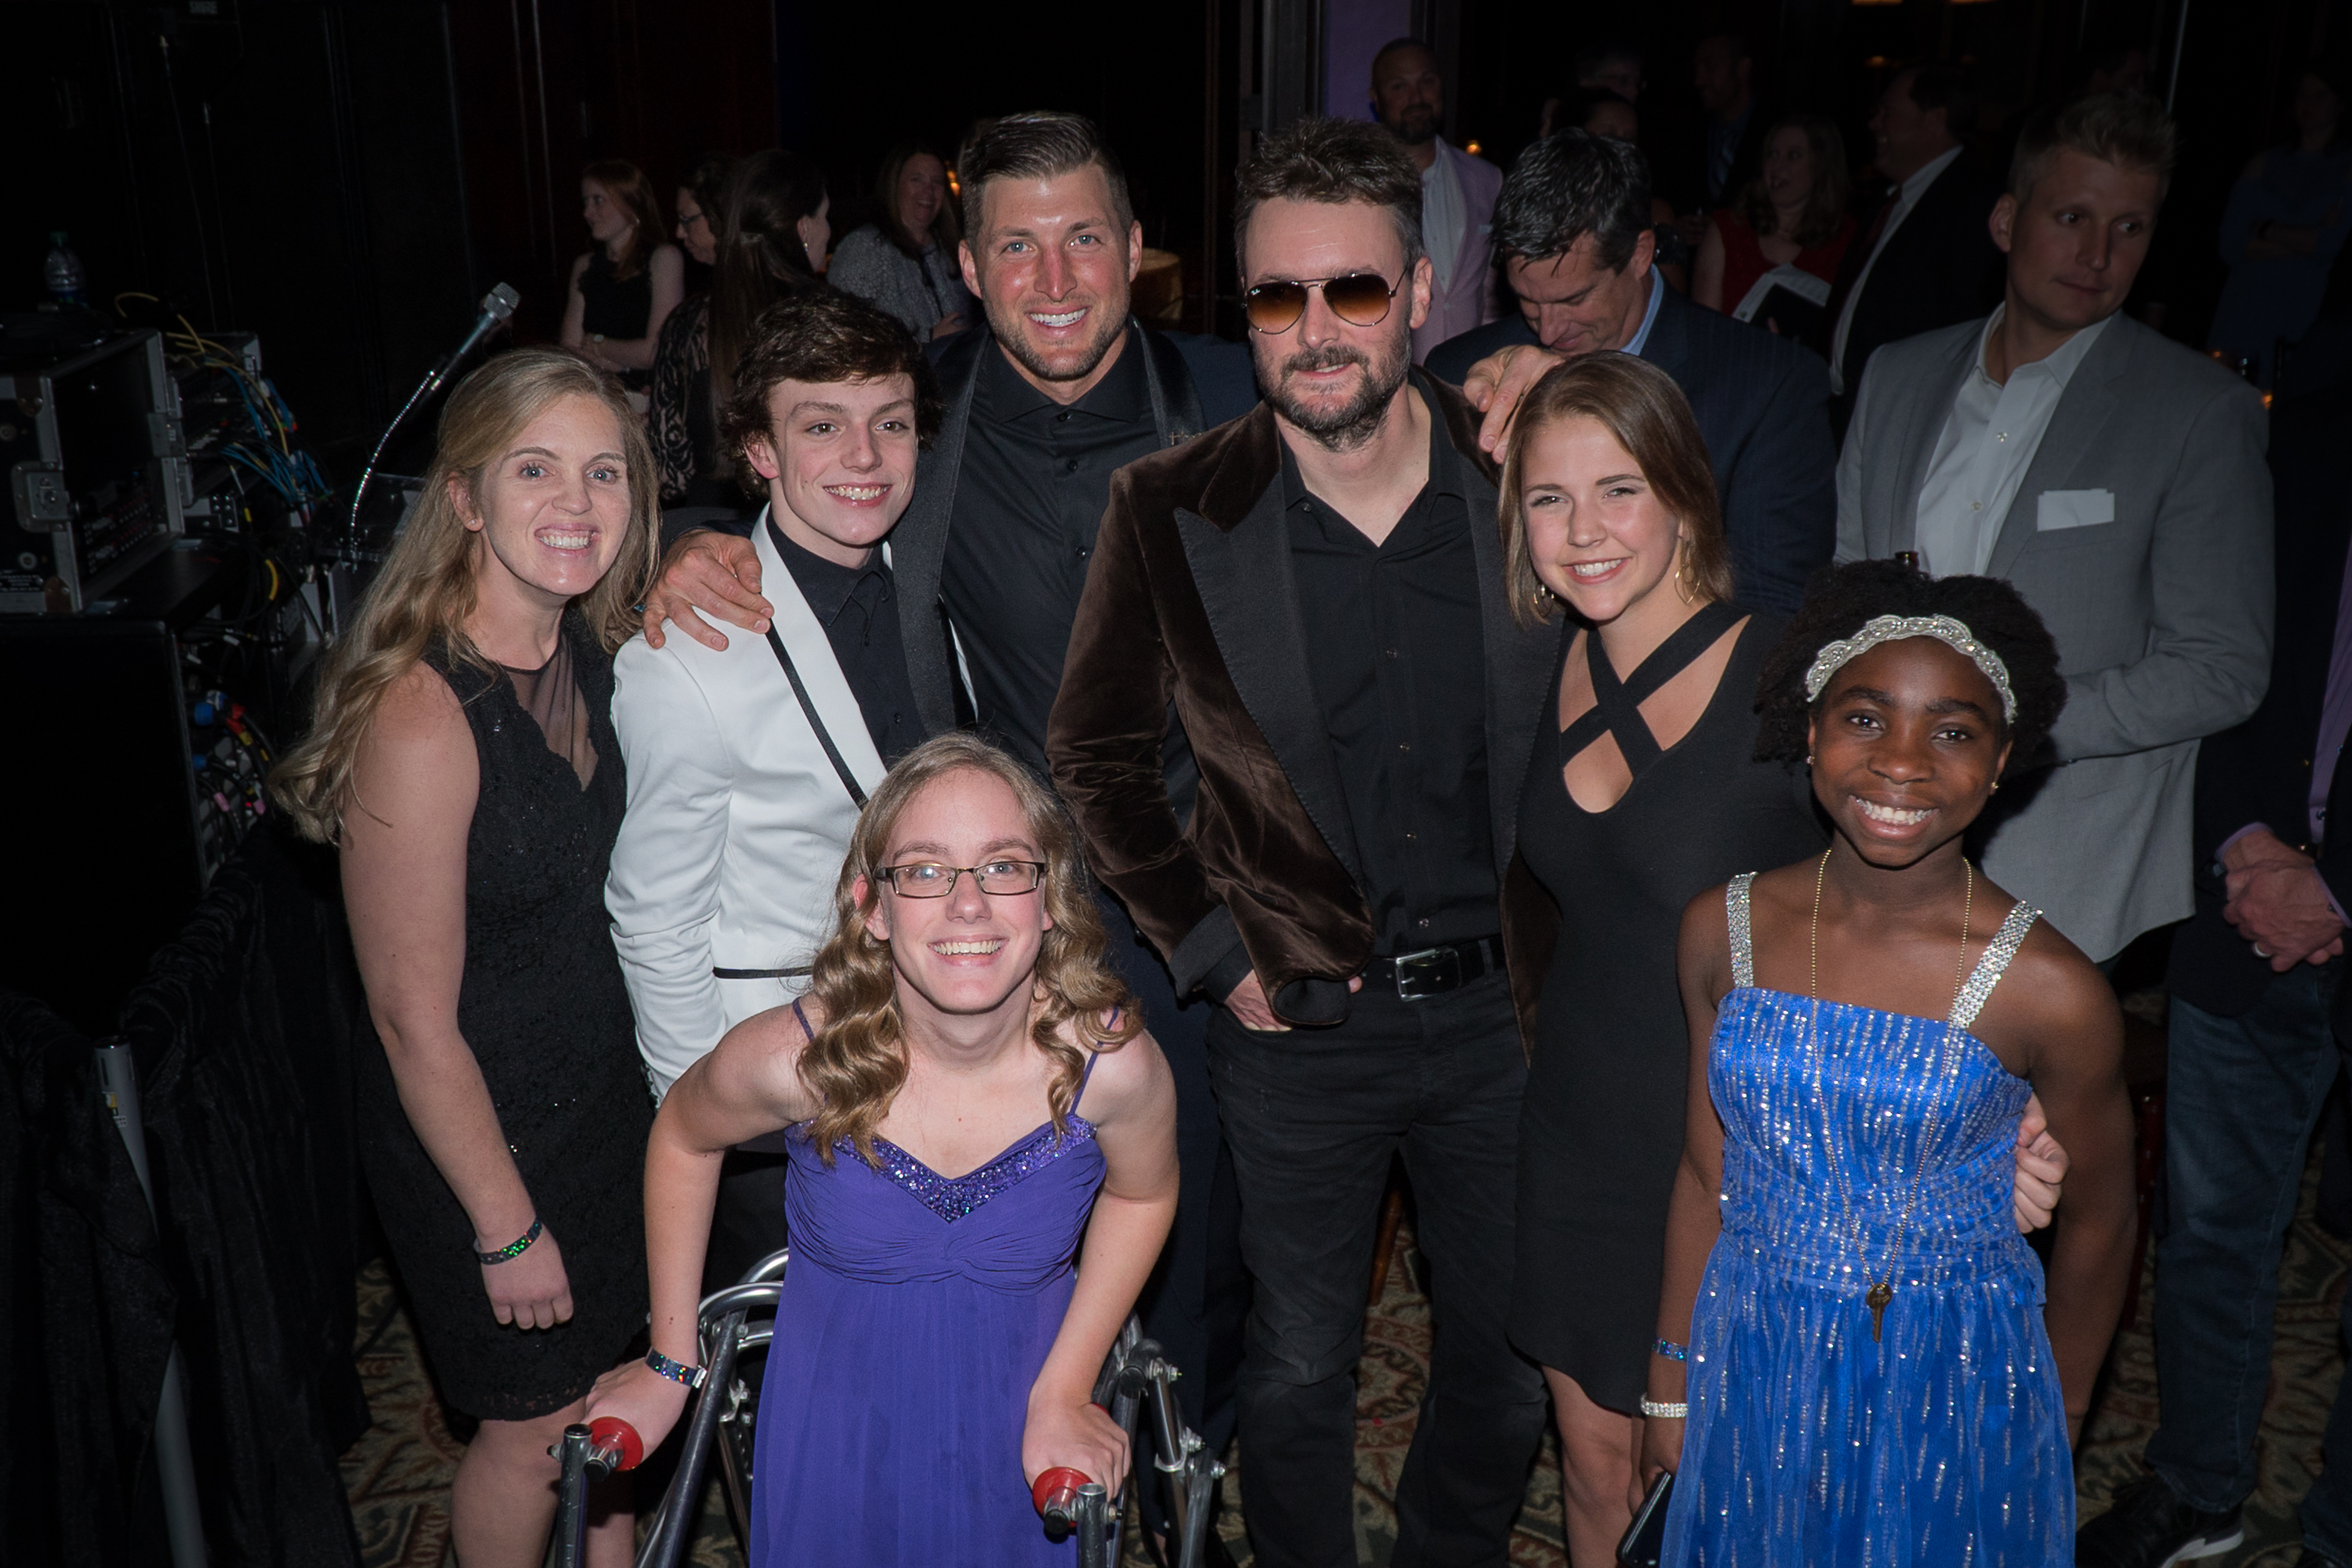 Erich_Church__Tim_Tebow_pose_with_TTF_ministry_guests.jpg